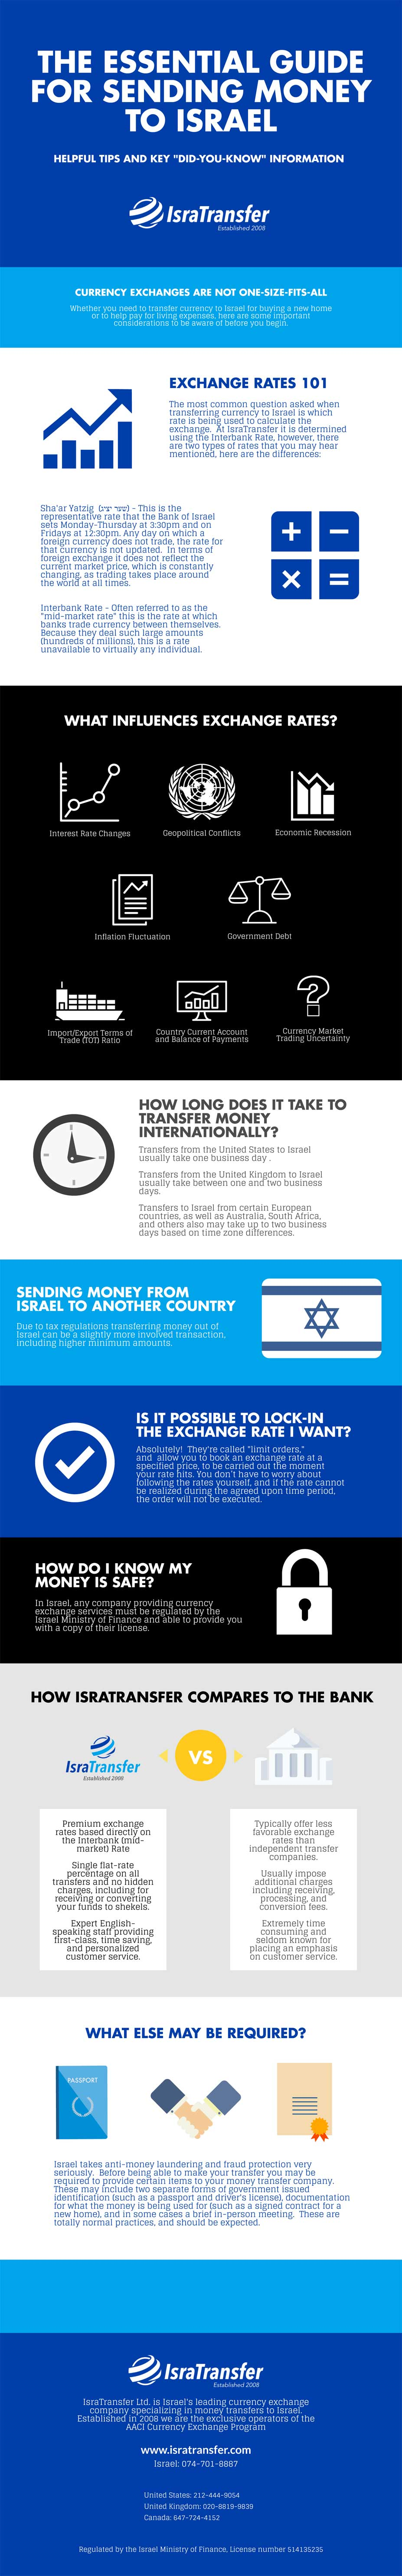 The Best Way To Send Money Israel